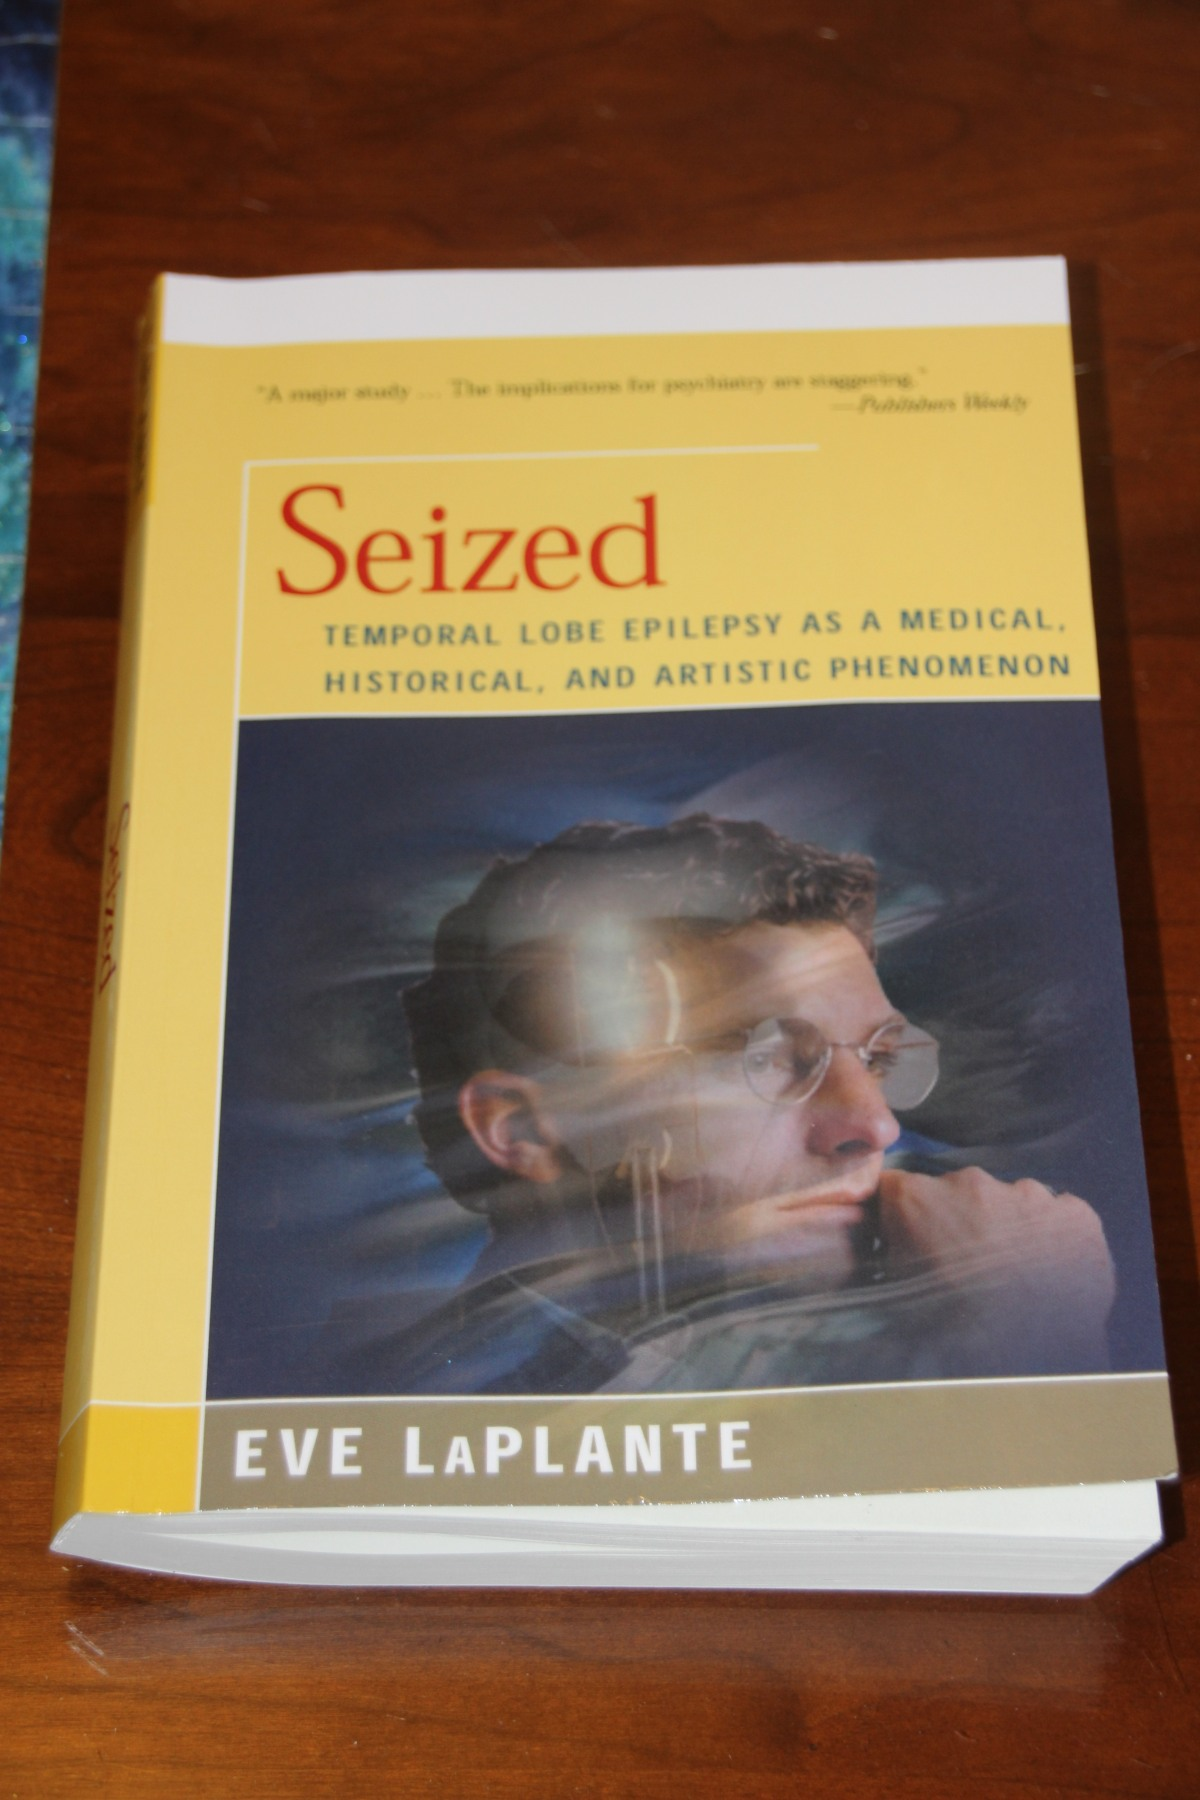 Another Epilepsy Book